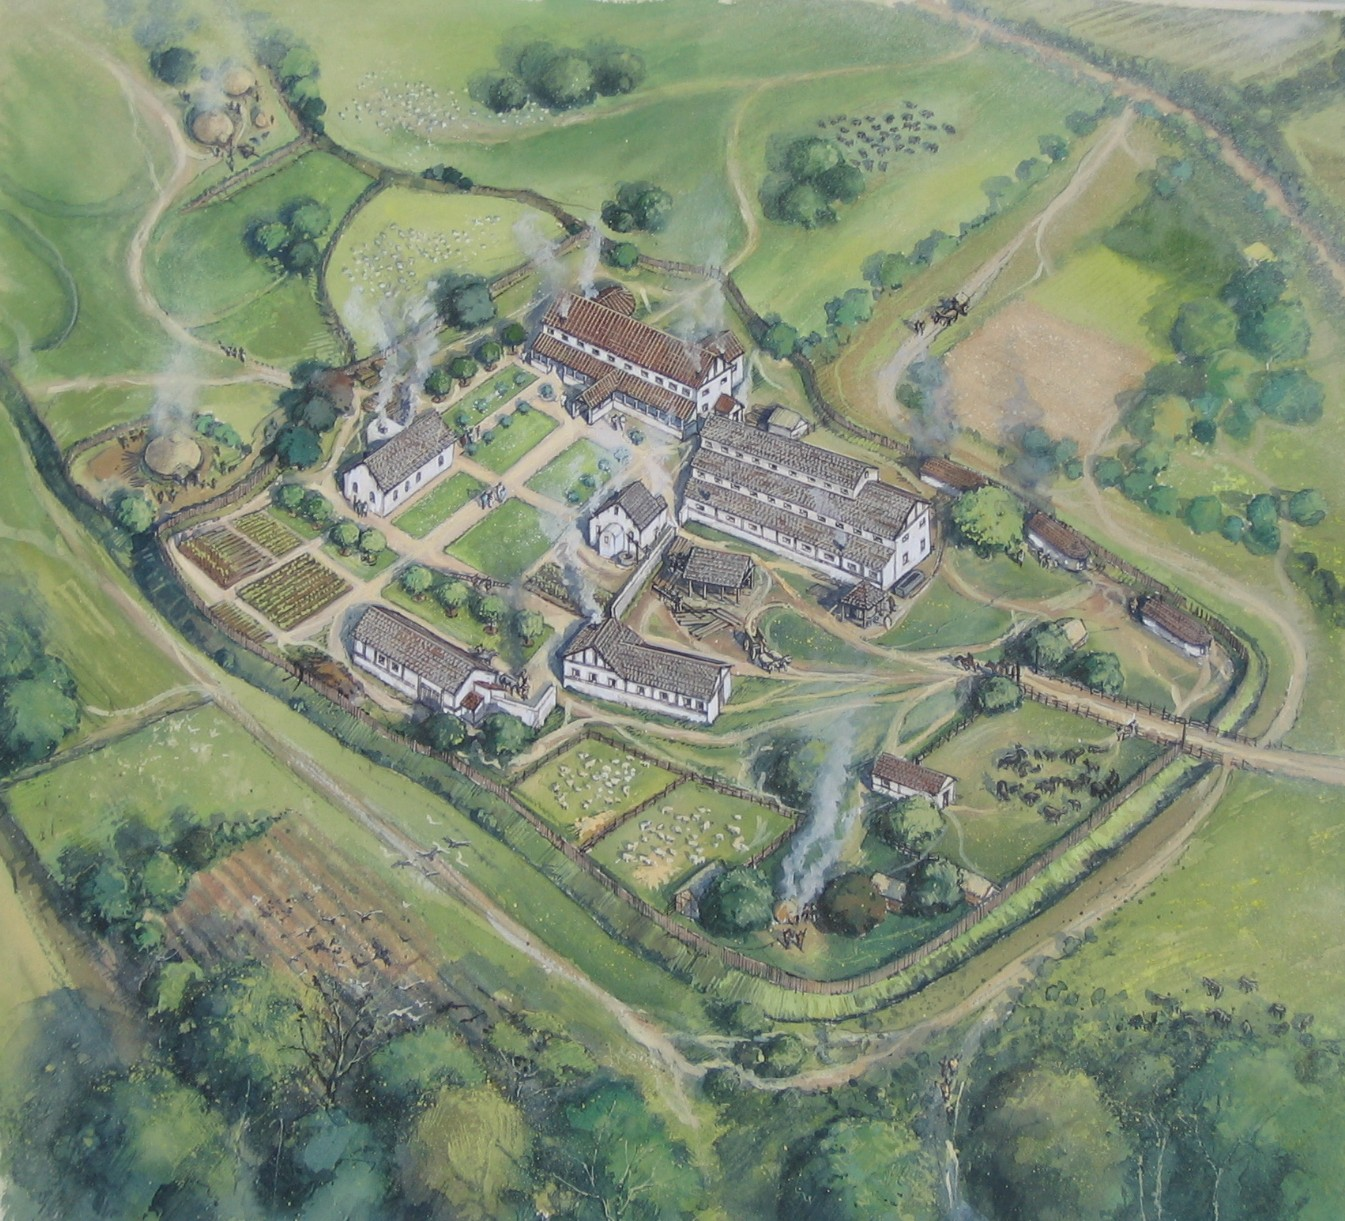 An artists' impression of Dalton Parlours showing a complex of two large buidlings, three mid sized and two smaller houses arranged in a loose square with green areas in the centre.